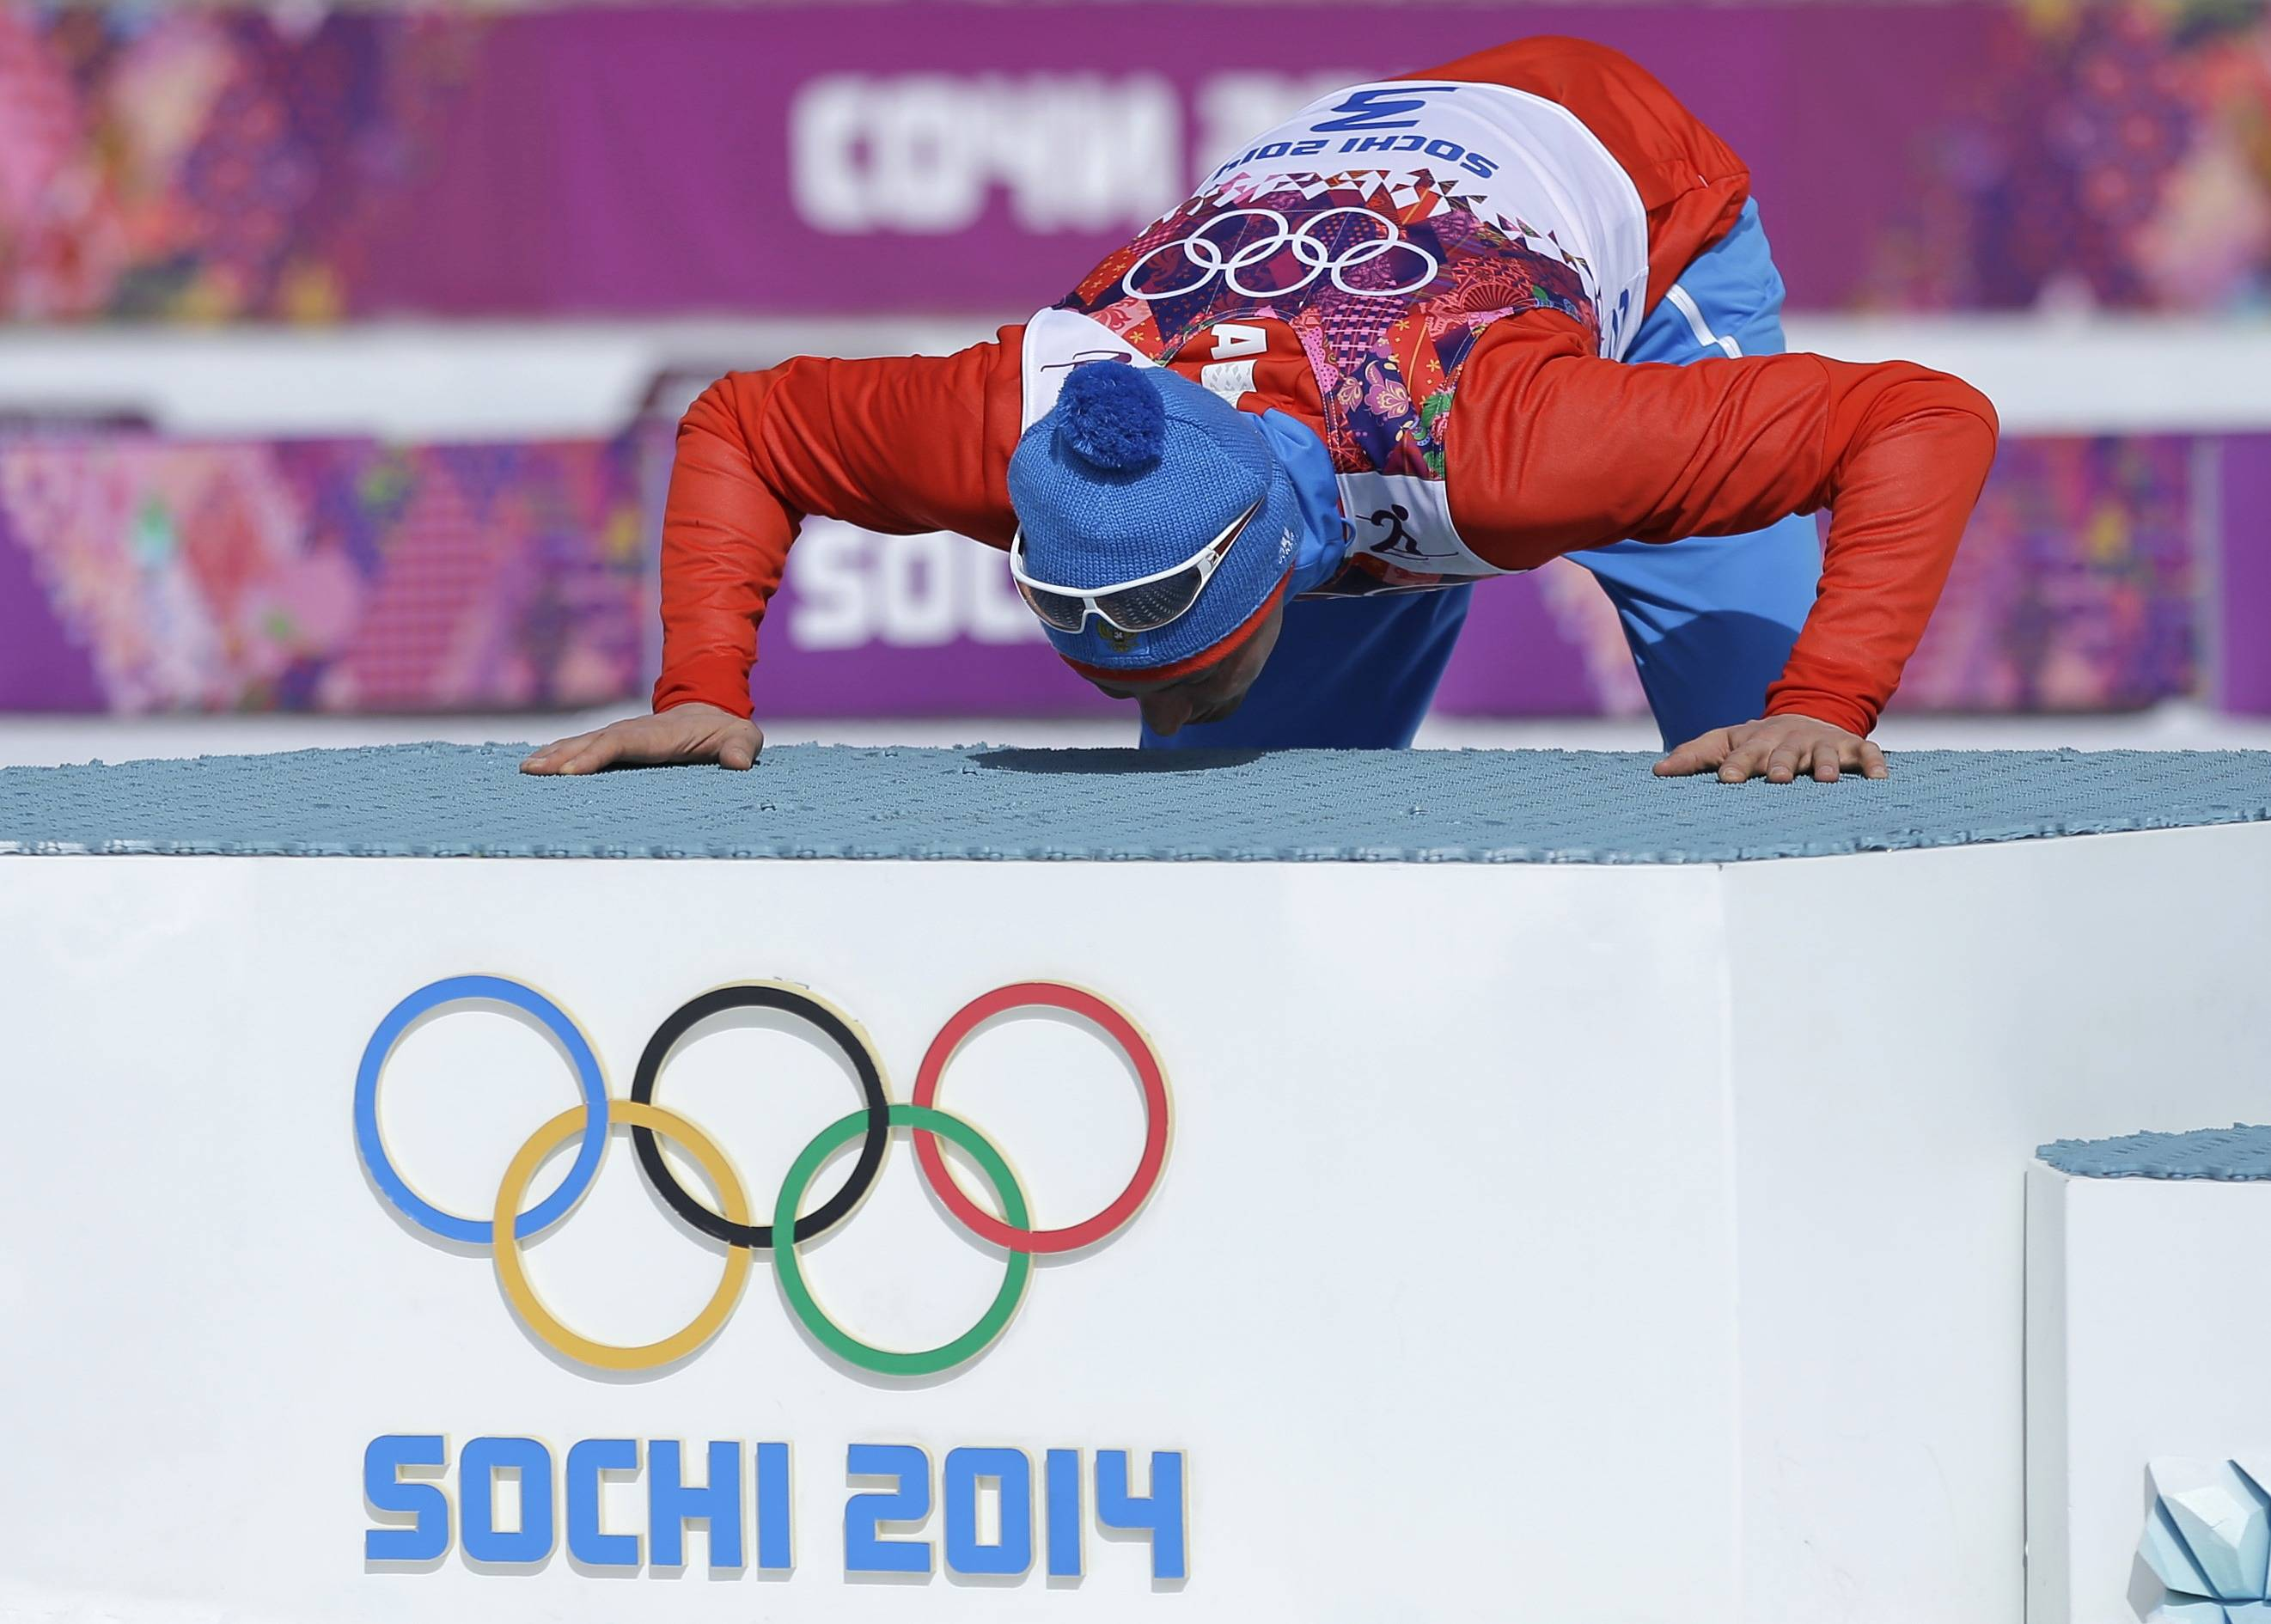 Russia's Alexander Legkov kisses the podium during the flower ceremony after winning the gold medal in the men's 50K cross-country race at the 2014 Winter Olympics, Sunday, Feb. 23, 2014, in Krasnaya Polyana, Russia.